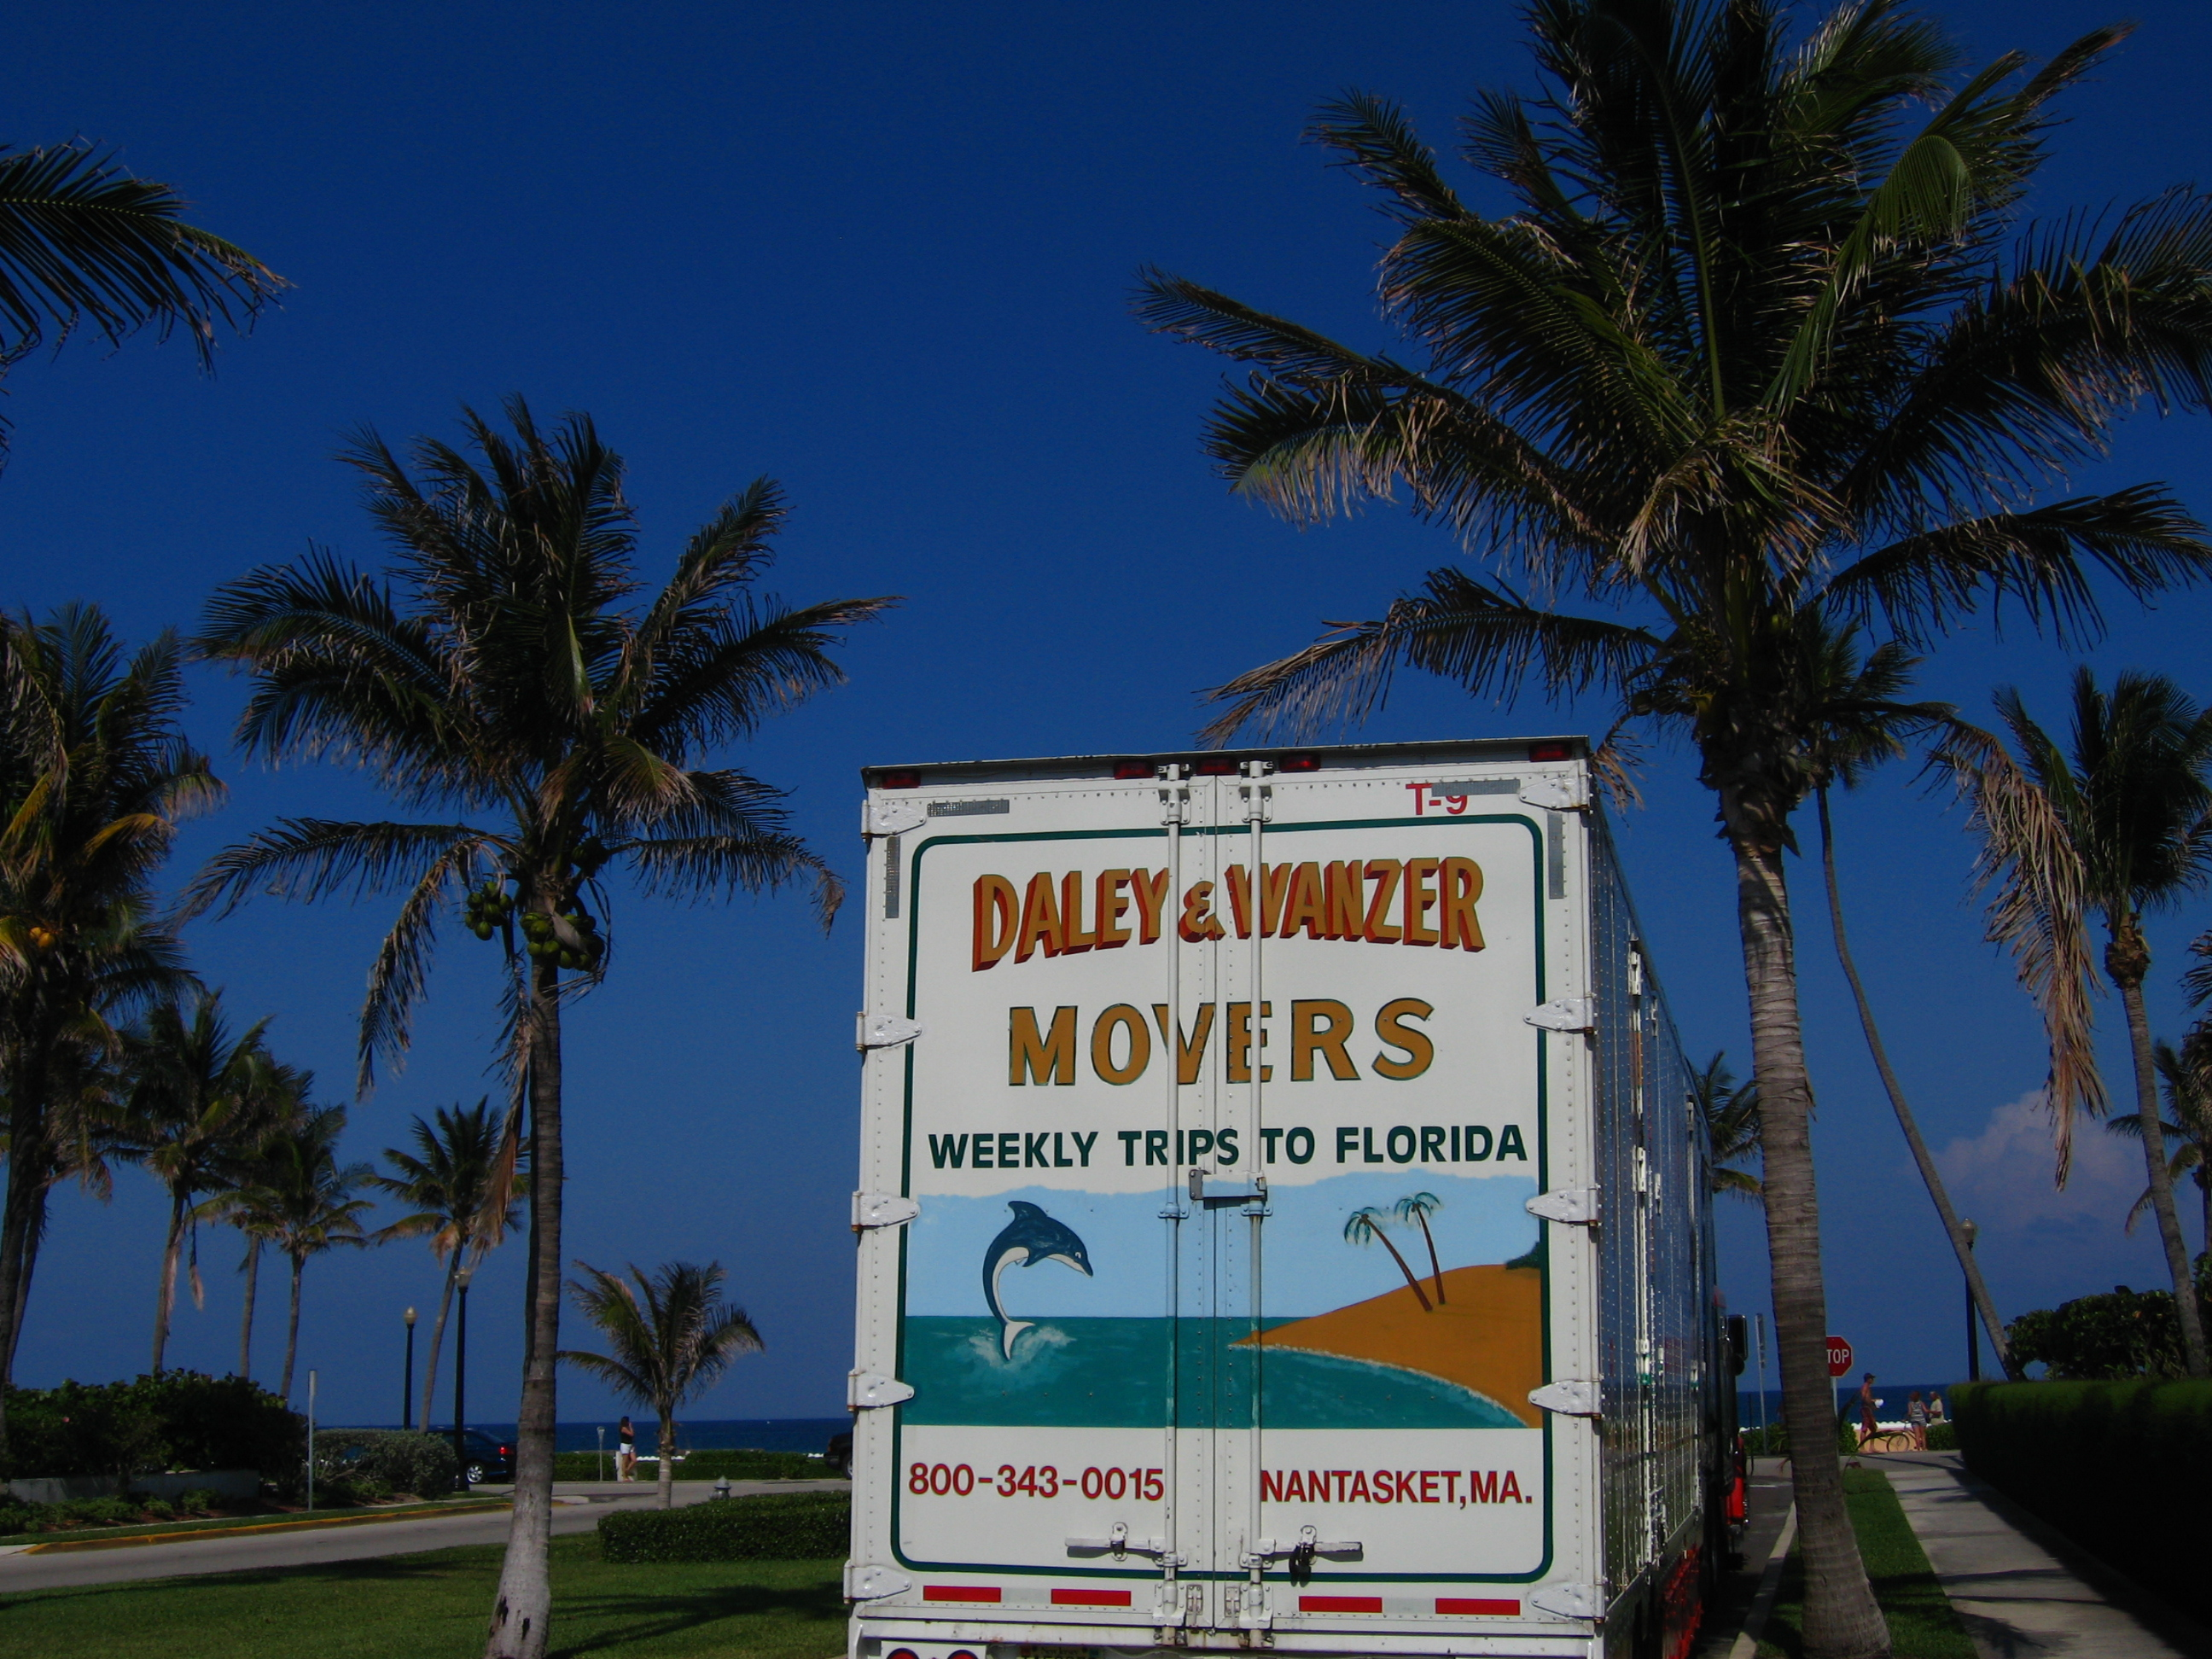 Moving Van, West Palm Beach, Florida